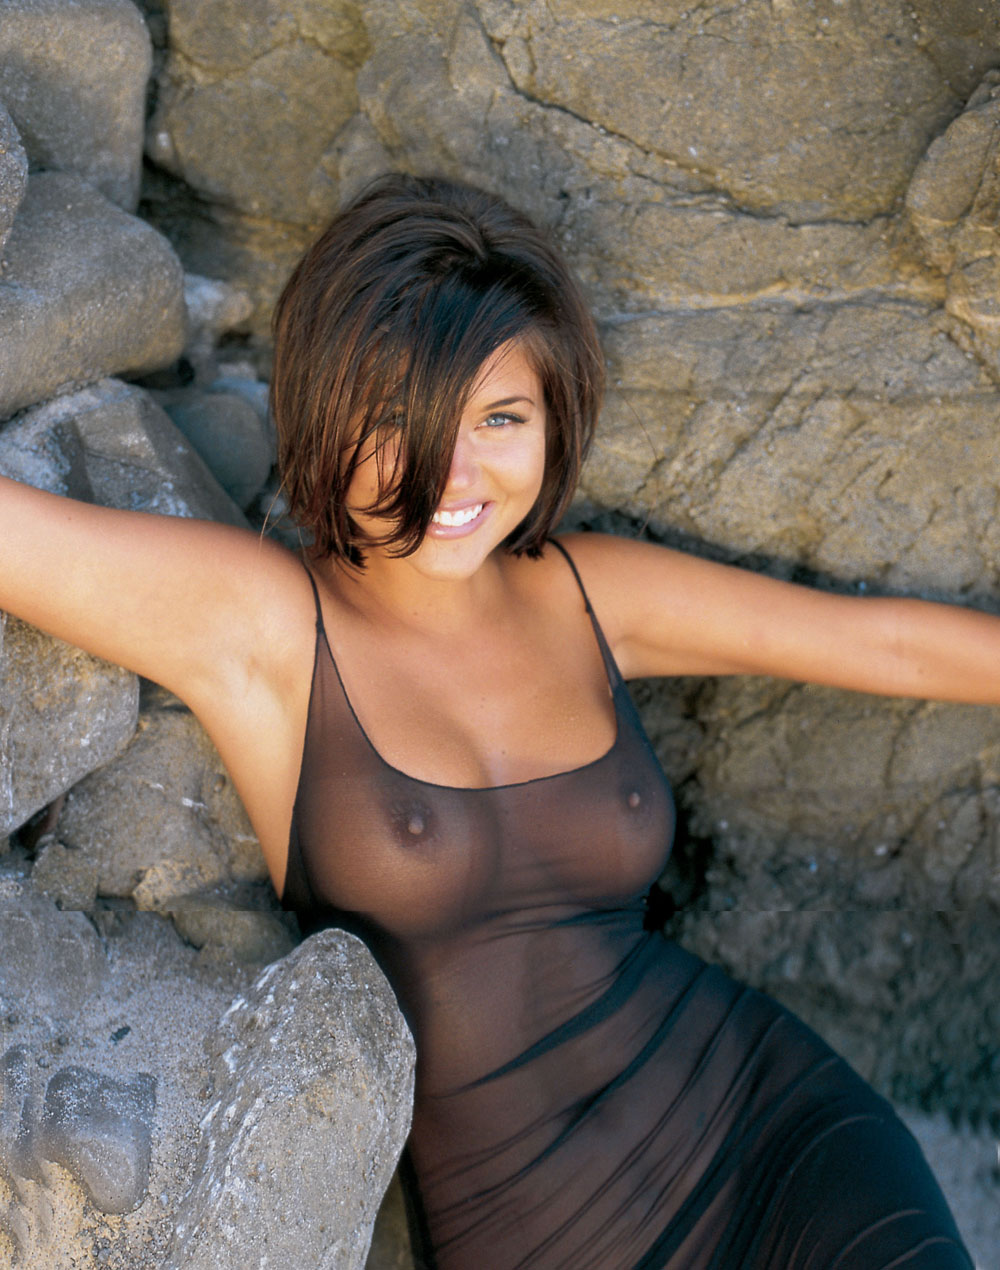 Tiffani-Amber Thiessen Nude Pics and Videos -- - Top Nude